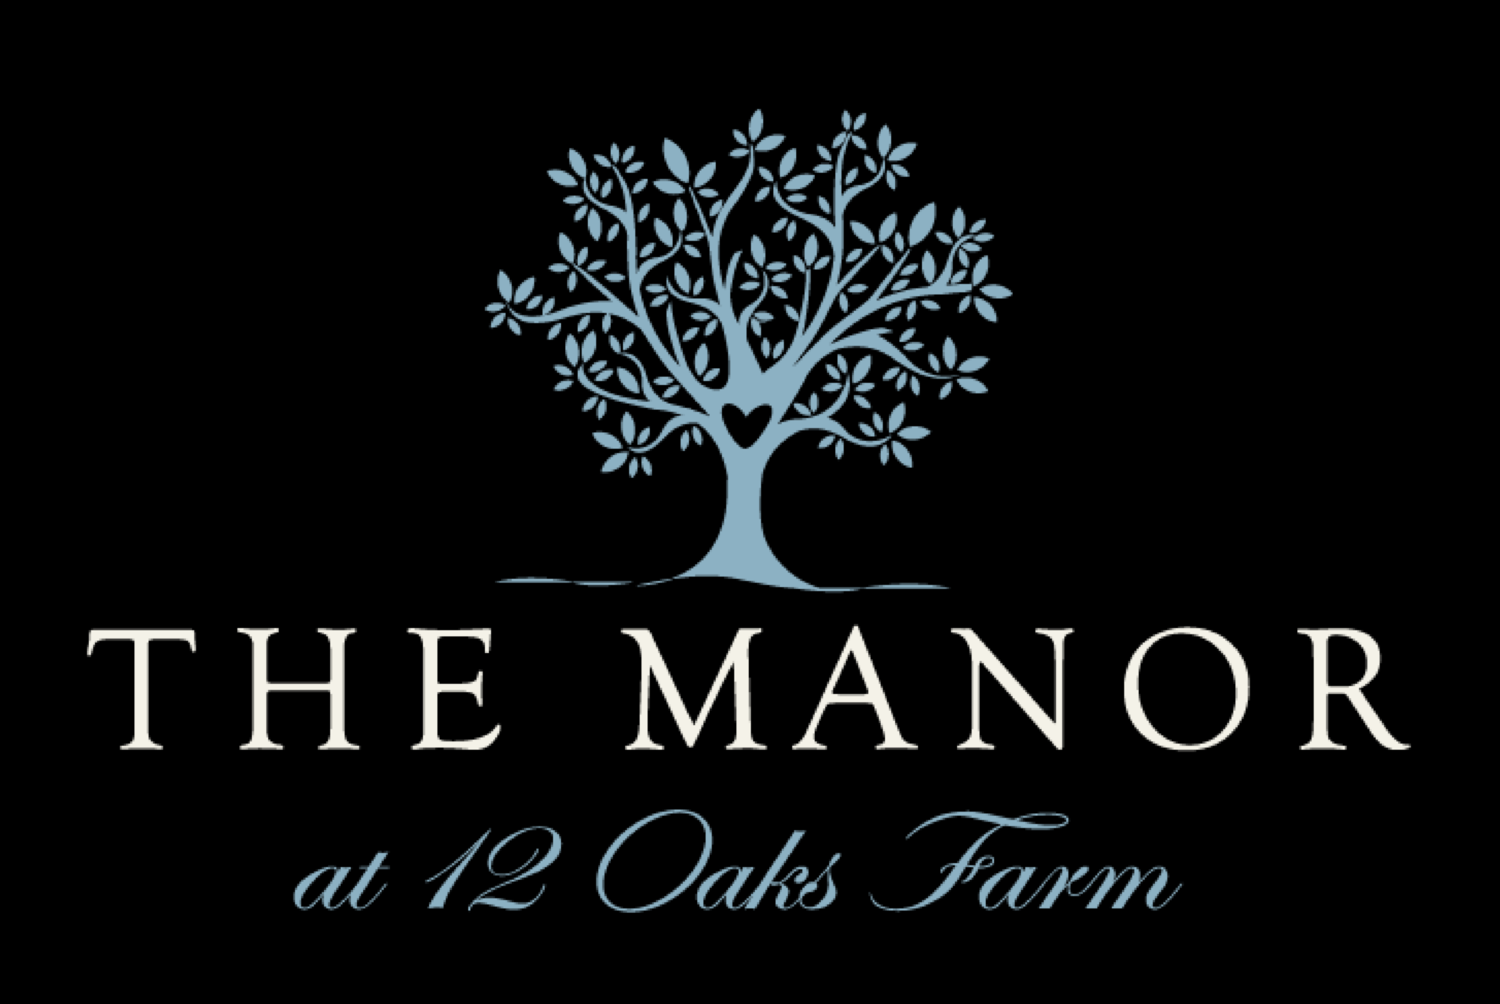 The Manor at 12 Oaks